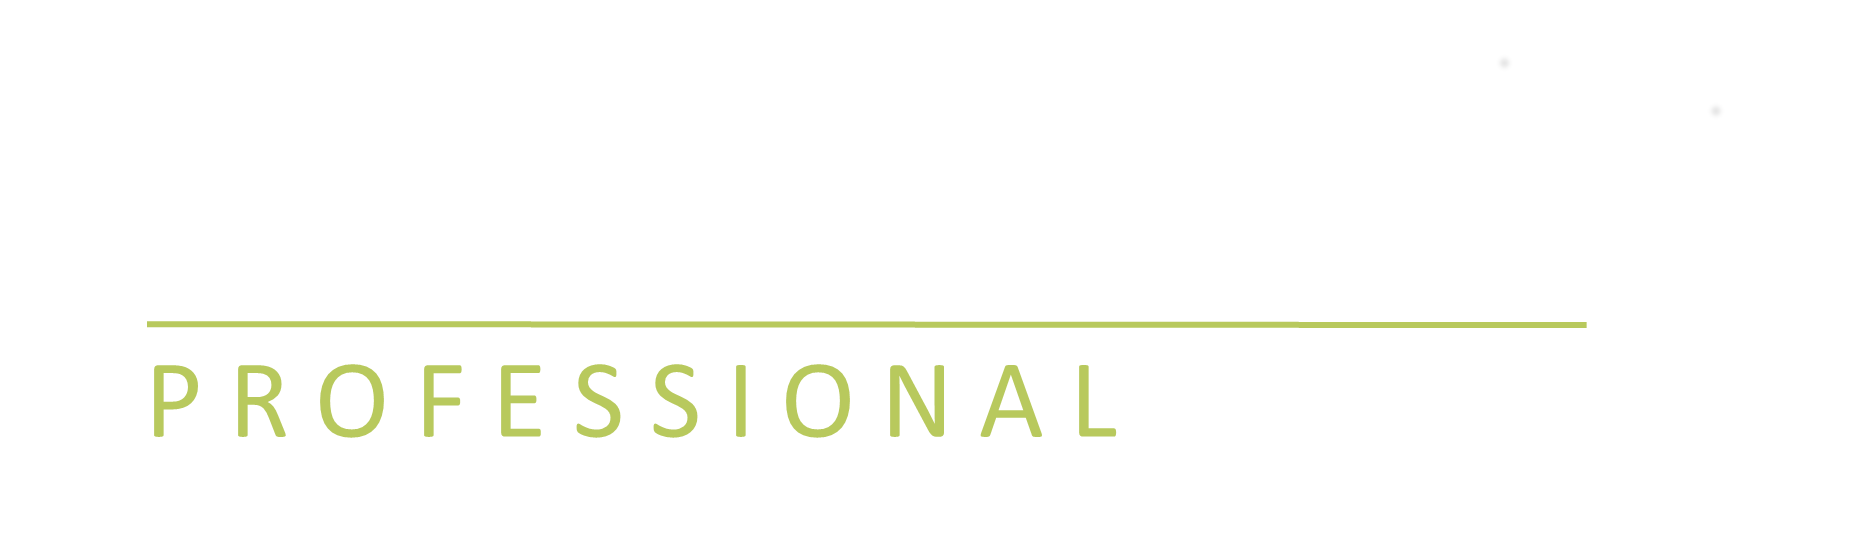 software testing professional